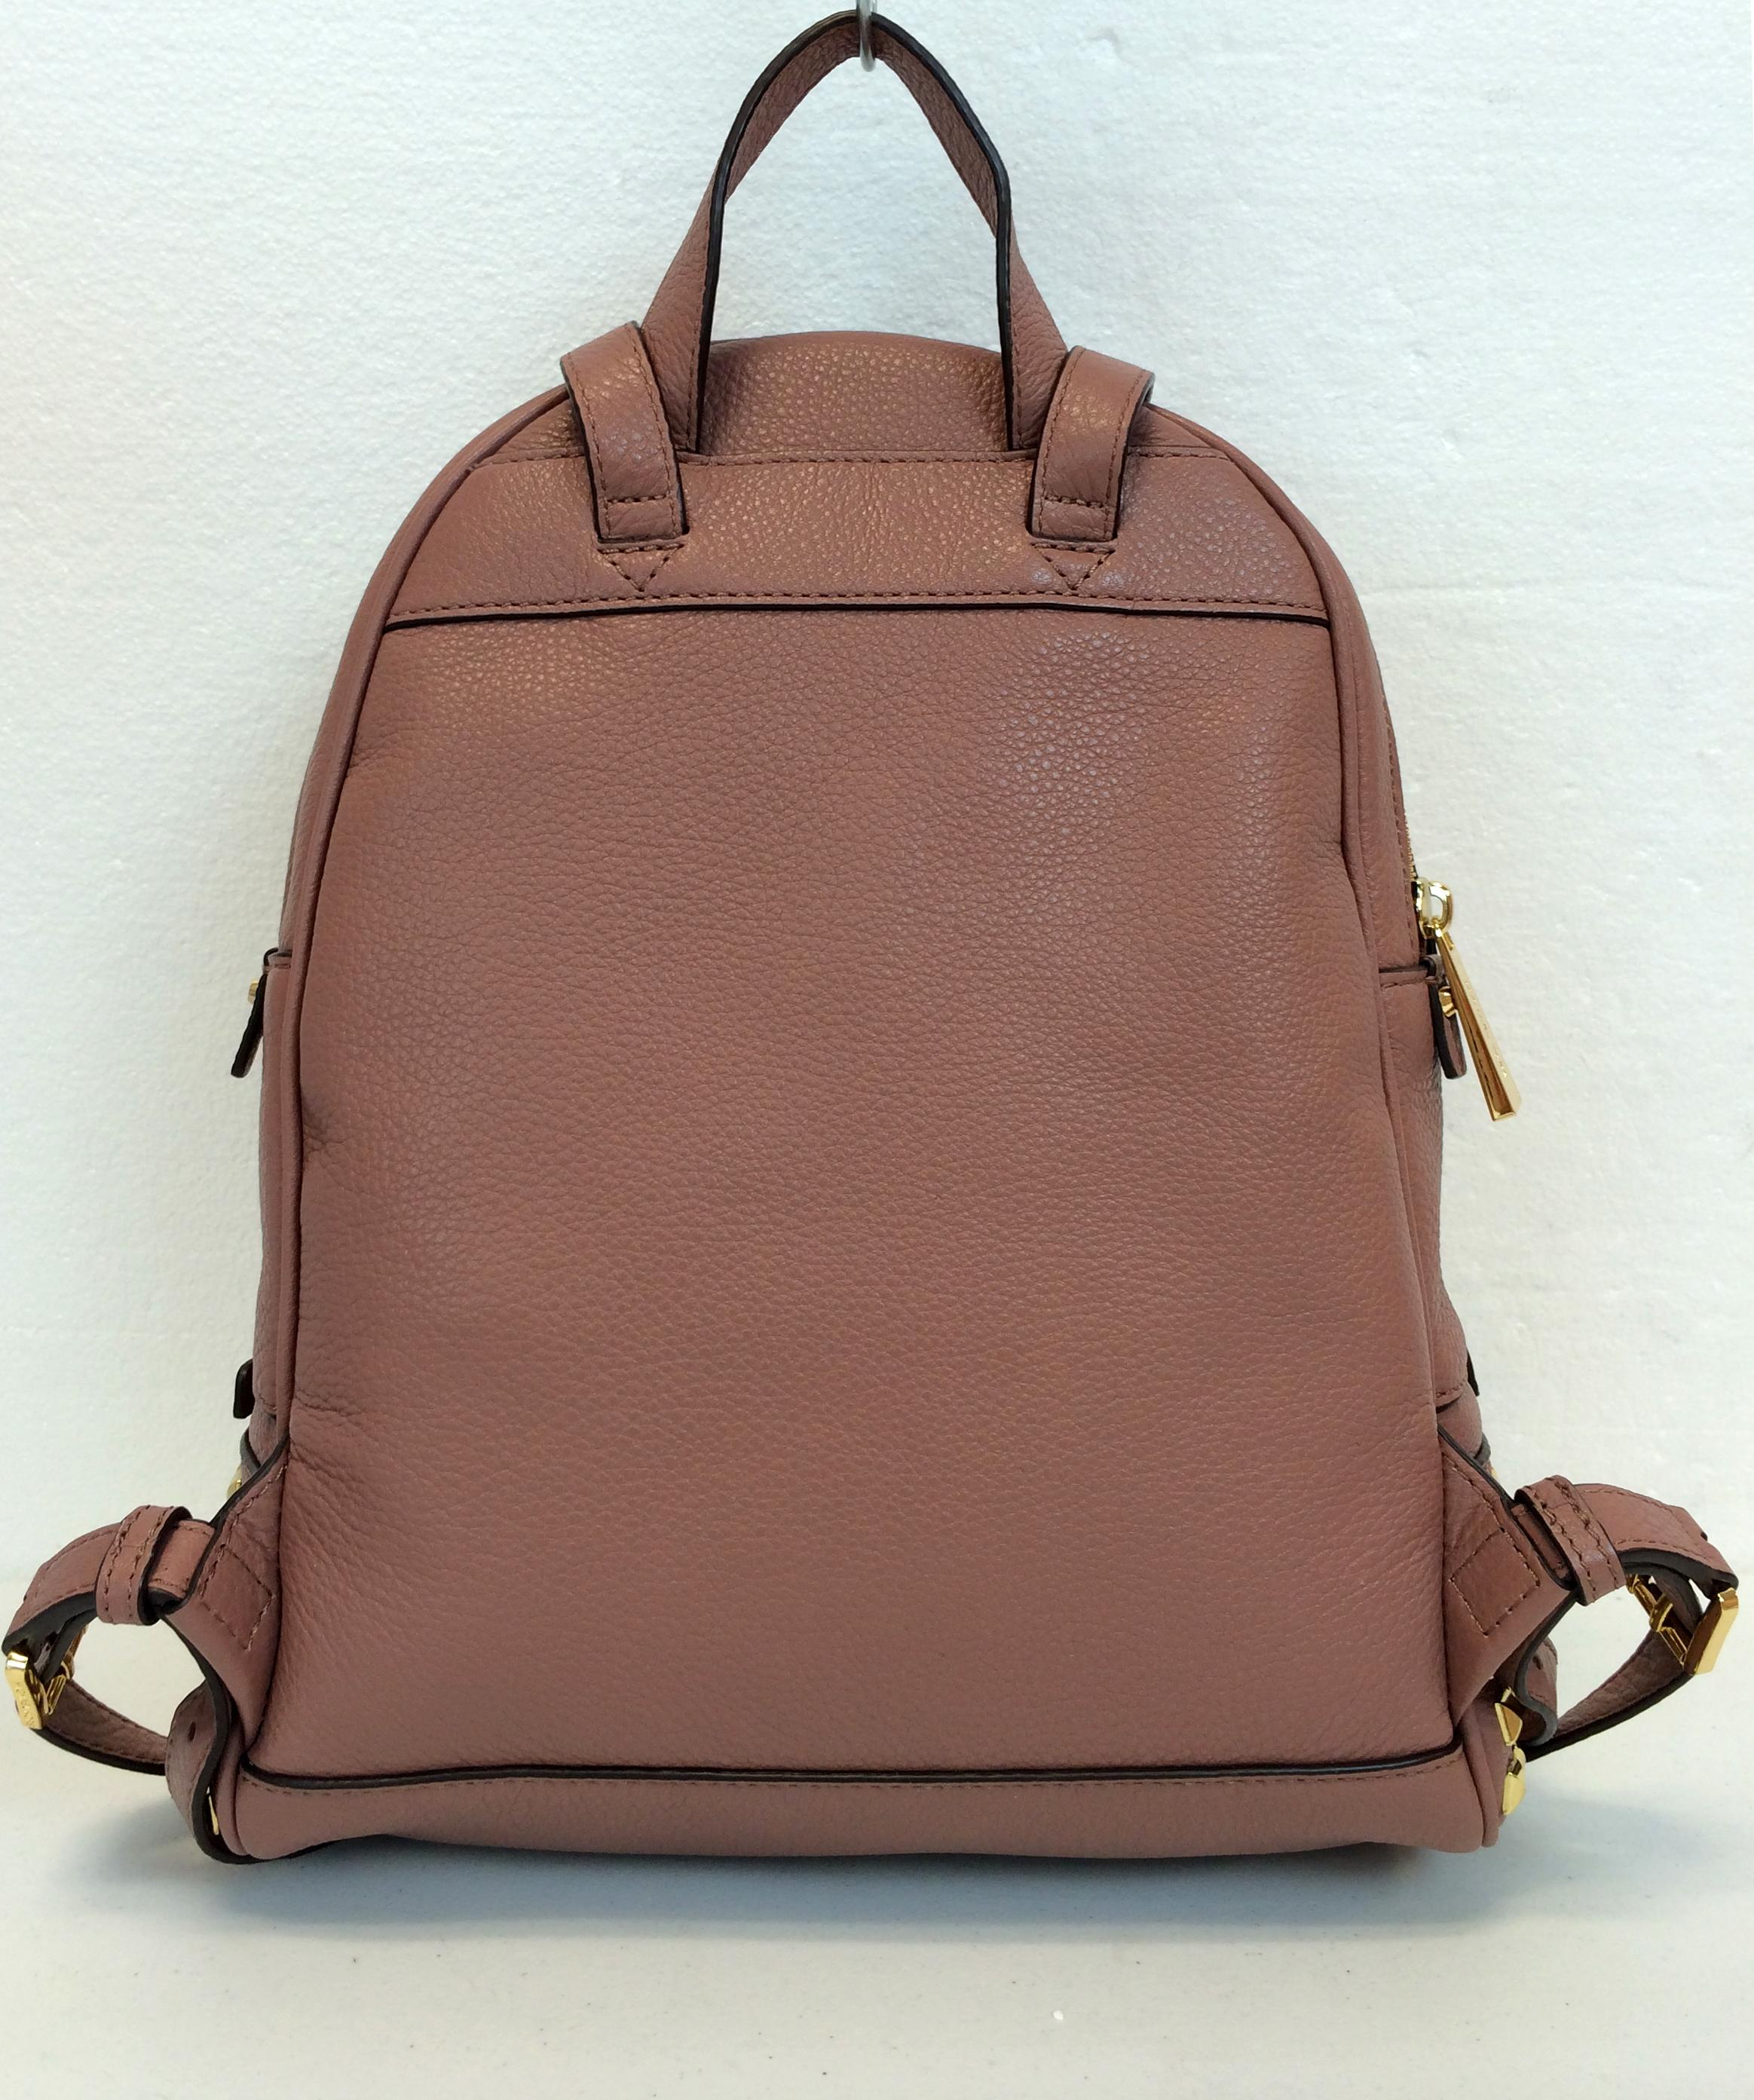 05ae62adf4e7 ... official store michael kors studded small rhea leather backpack.  123456789101112 e5fee 7af0b